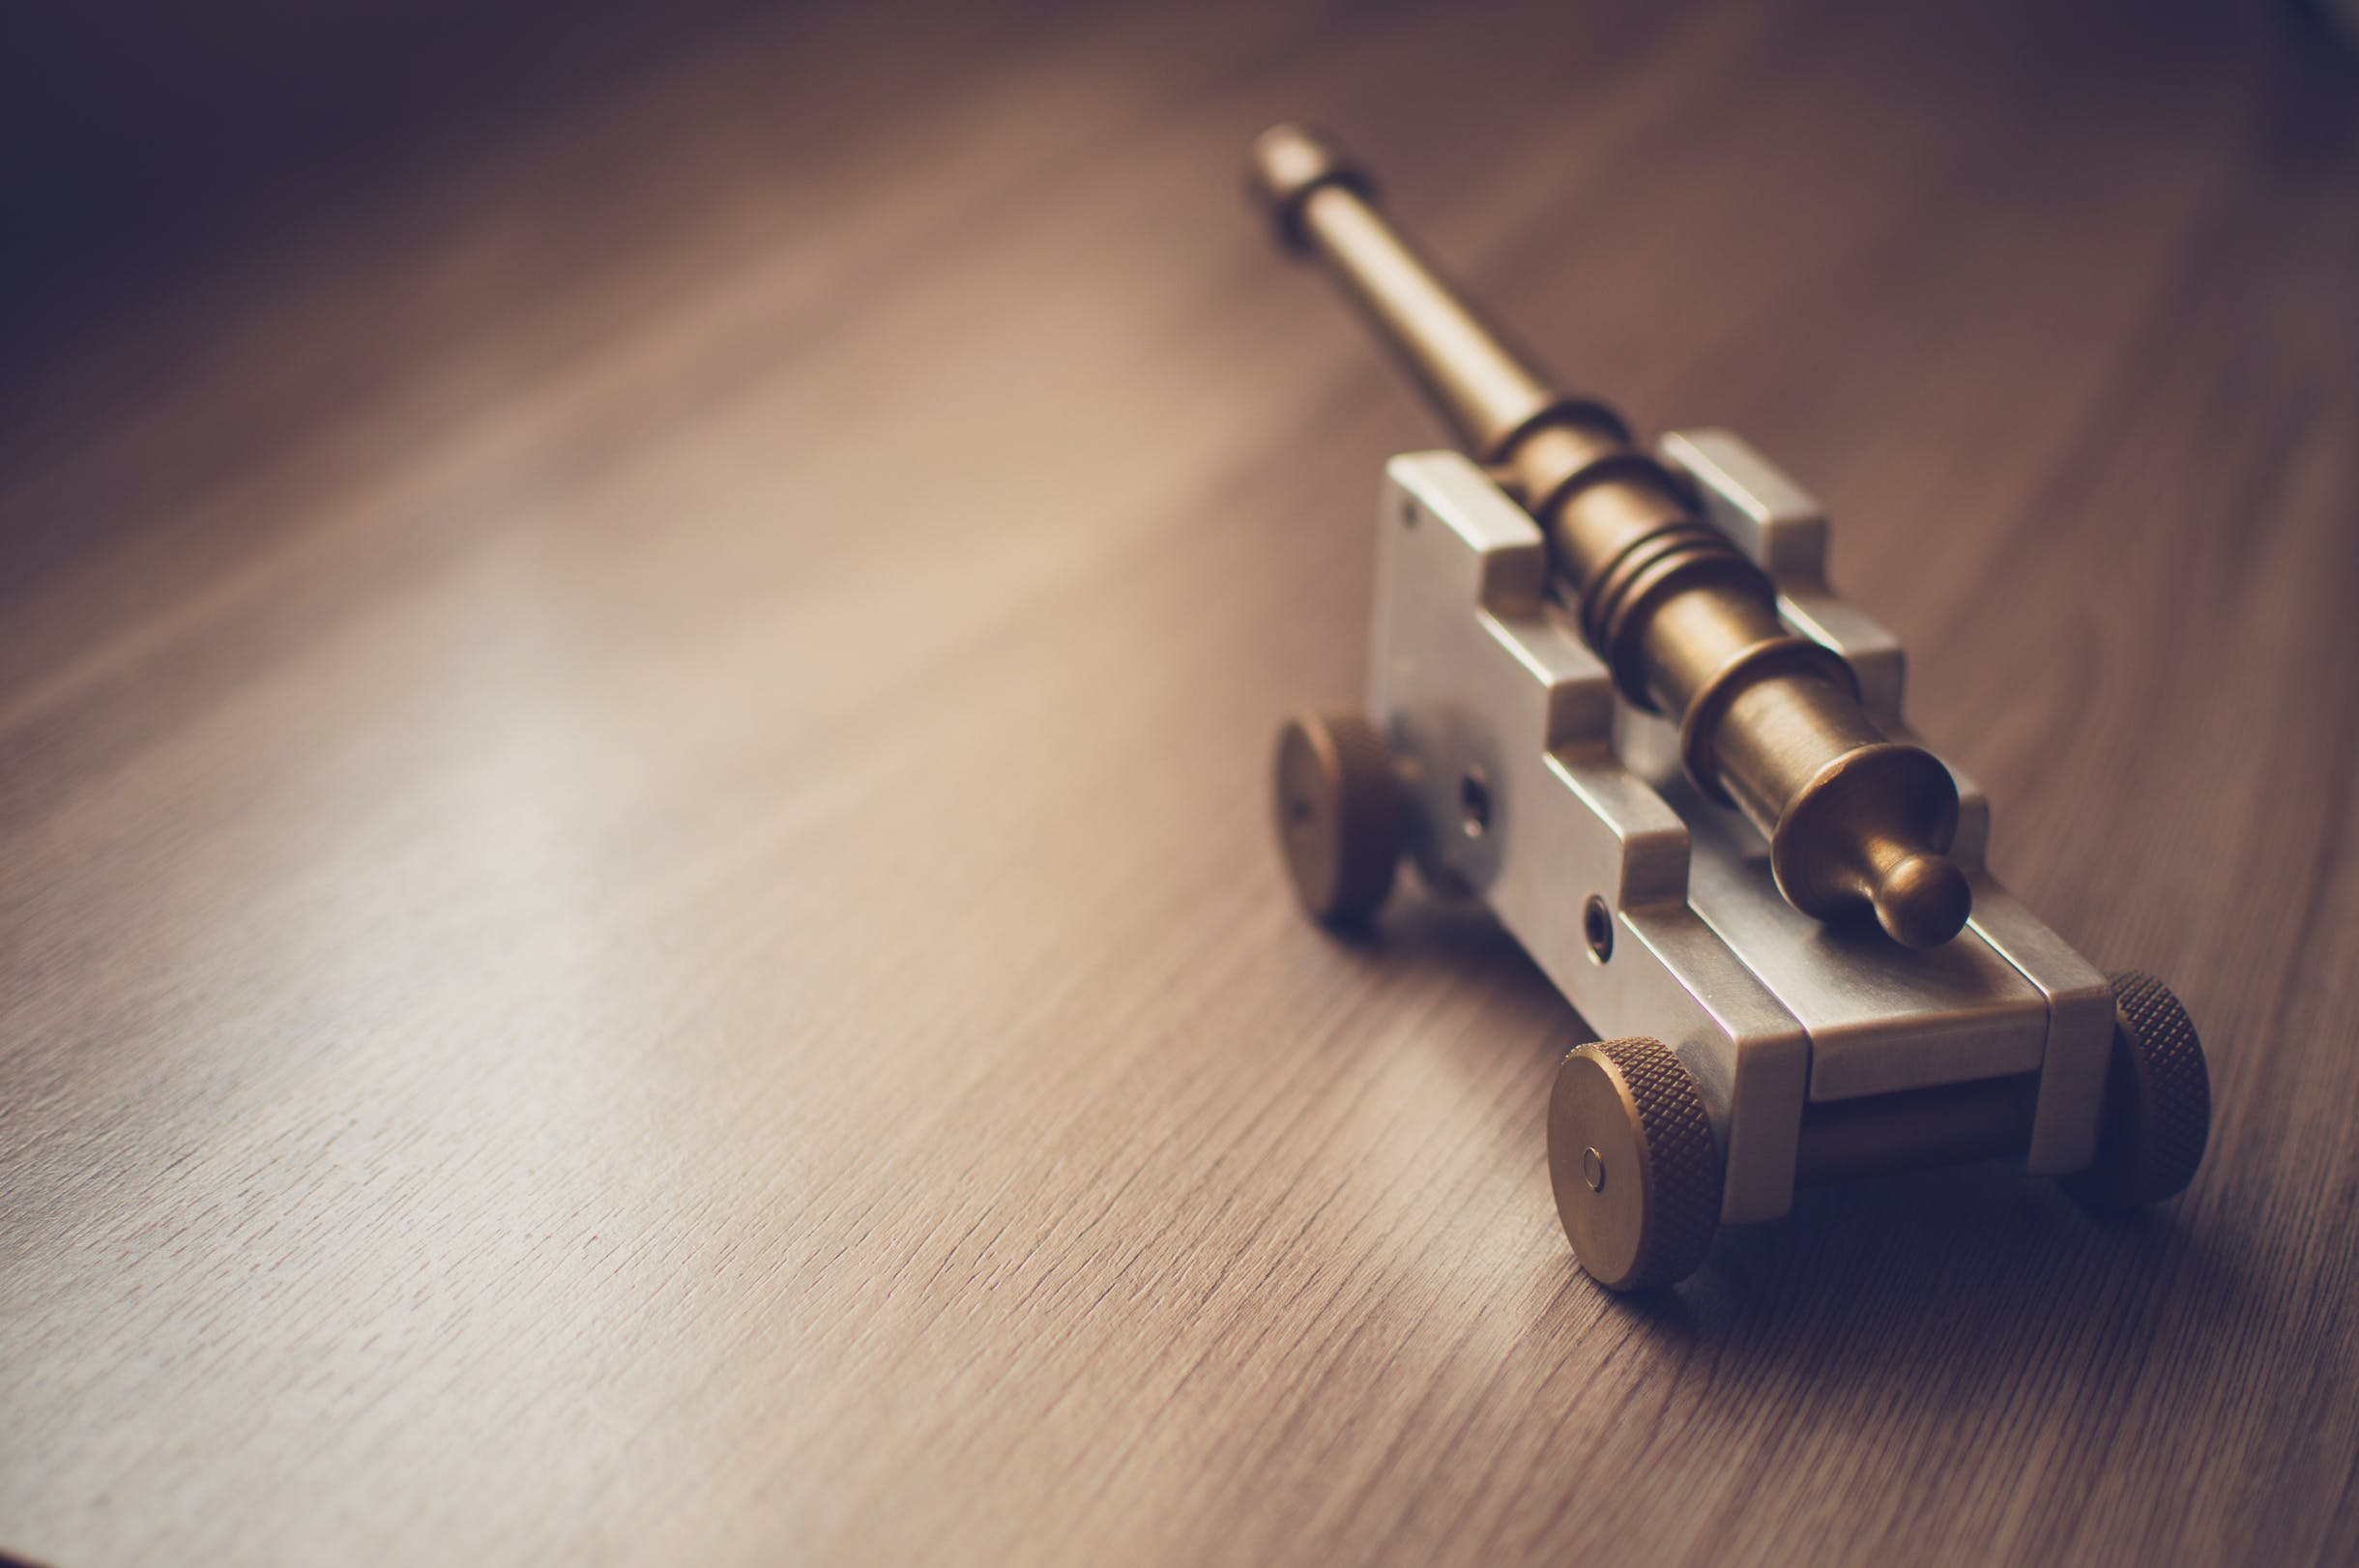 Grey Toy Cannon on a Beige Wooden Surface